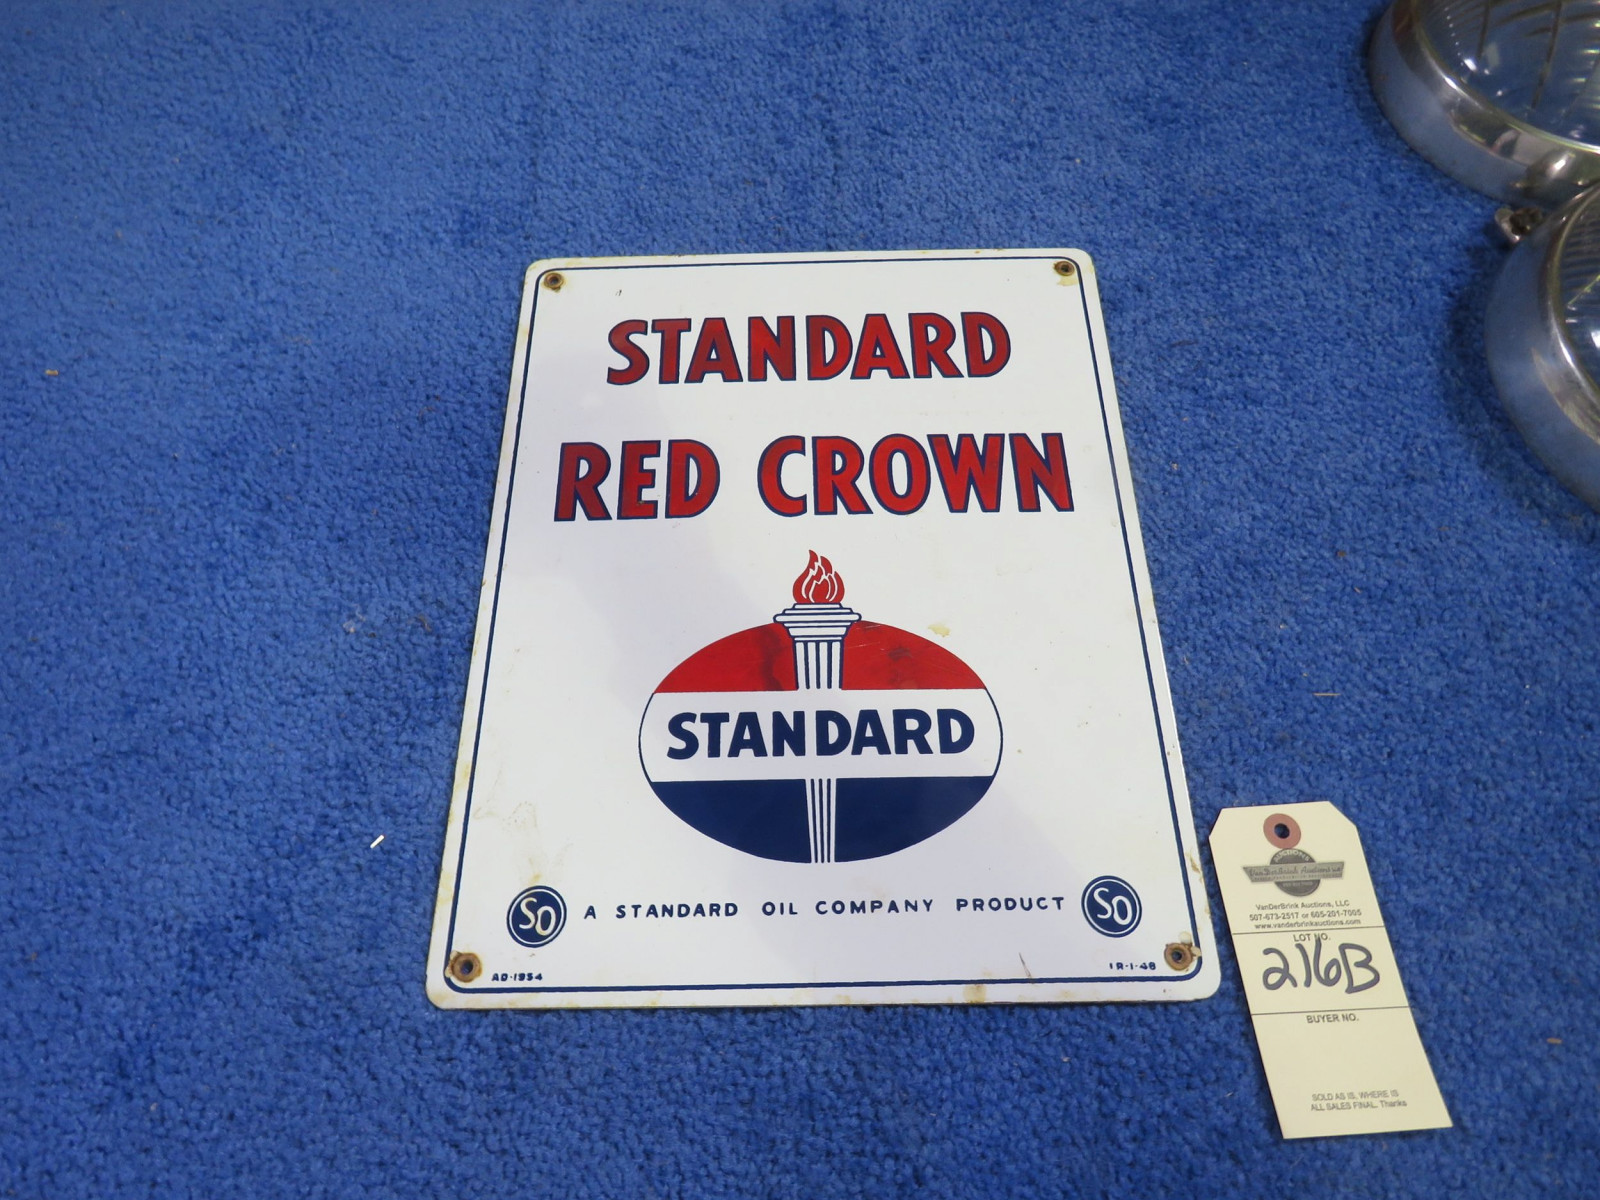 1954 Standard Red Crown SS Porcelain Pump Plate - Image 1